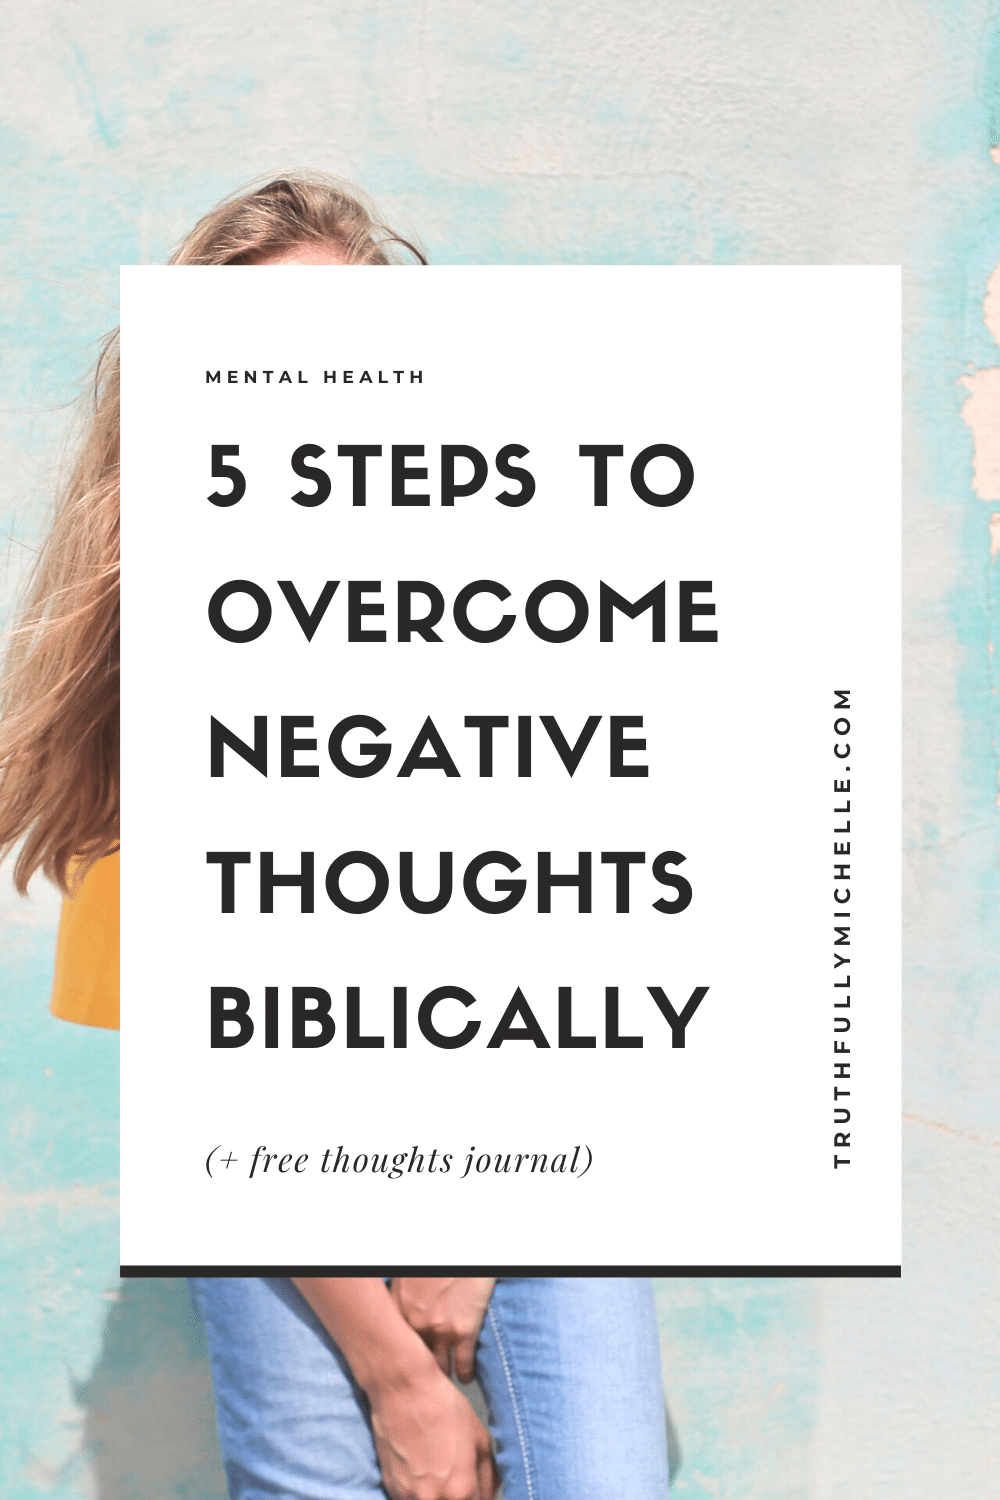 How to stop negative thoughts, how to get rid of negative thoughts, challenging negative thoughts, how to overcome negative thoughts as a Christian, how to replace negative thoughts, replacing negative thoughts with truth, how to overcome negative thinking, how to stop negative thinking, how to stop negative self talk, how to remove negative thoughts, stopping negative thoughts, stopping negative thinking, stopping negative self talk, stopping negative self thoughts, removing negative thoughts, replacing negative thoughts with positive, overcoming negative thoughts